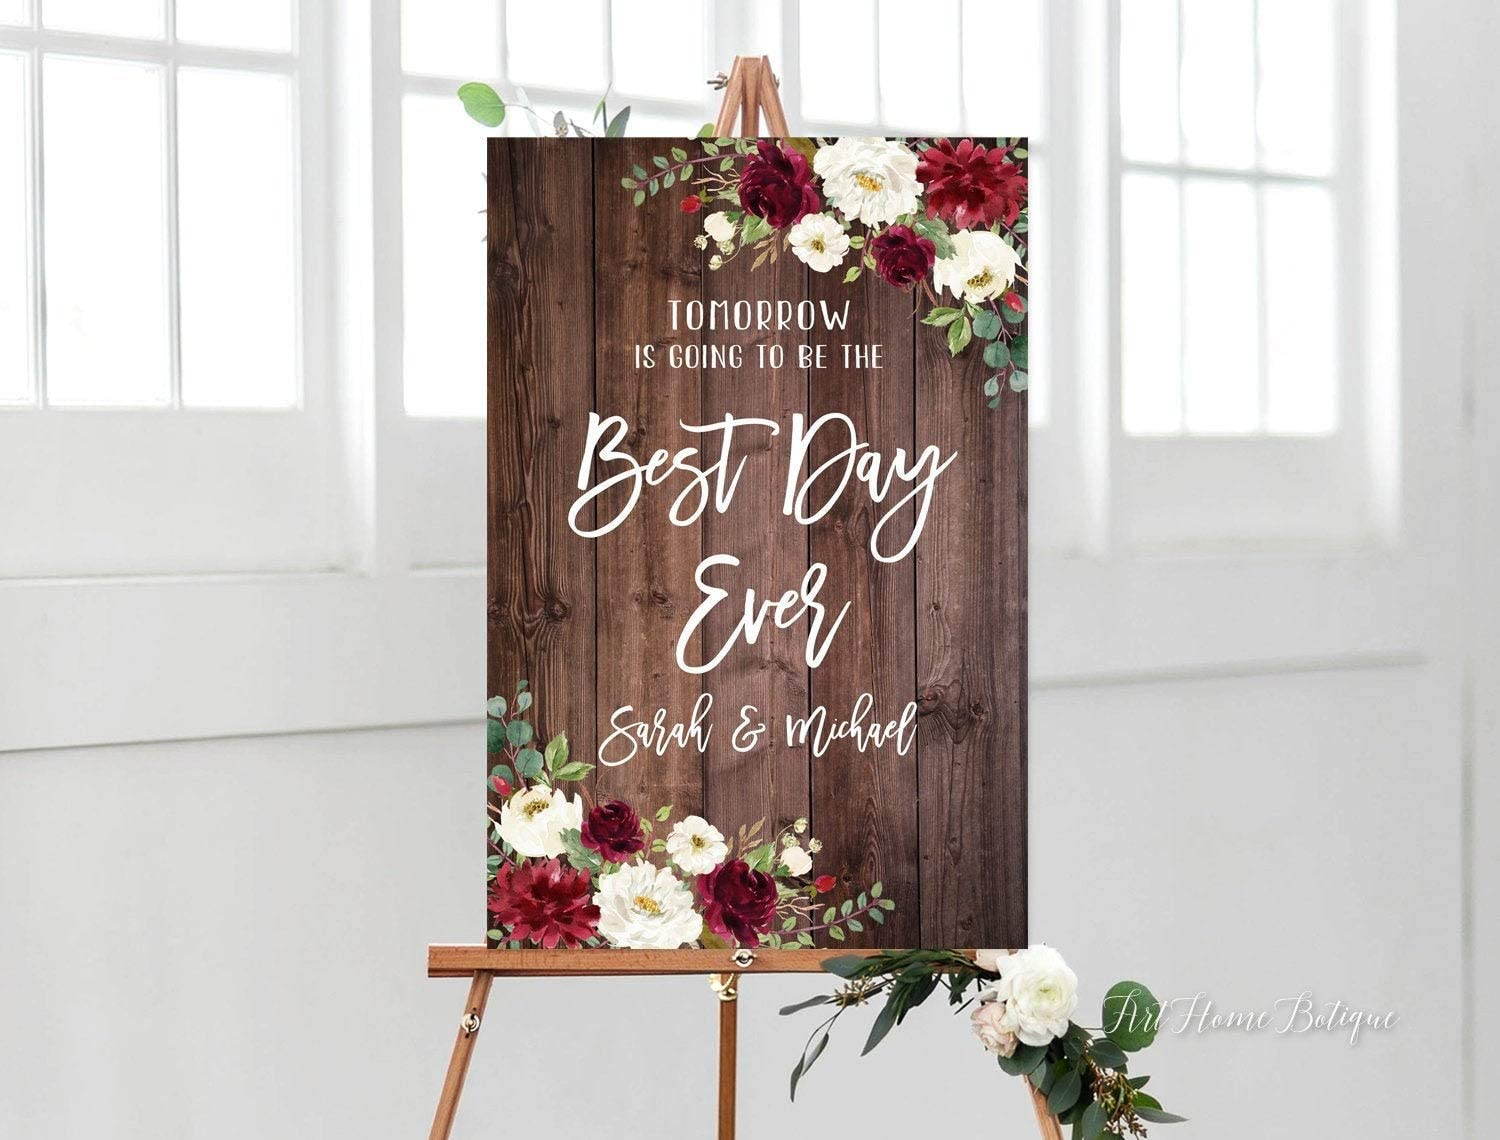 daoyiqi Wood Wedding Welcome Signs Tomorrow is Going to Be The Best Day Ever Rustic Rehearsal Dinner Printable Digital File Burgundy and White Welcome Sign for Decoration 12x18